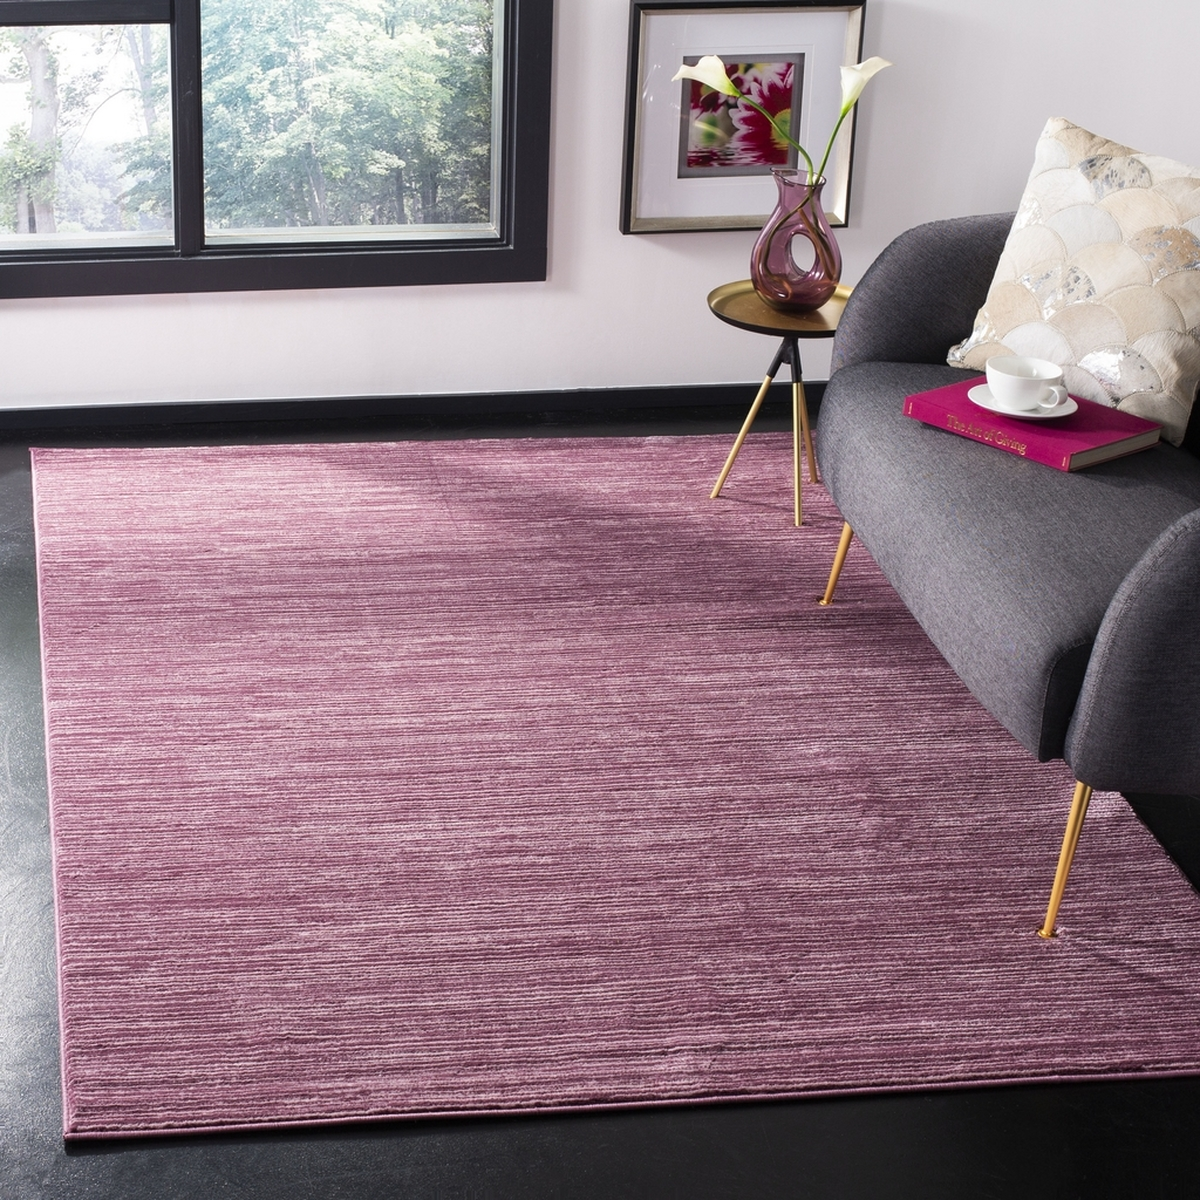 Rug Vsn606a Vision Area Rugs By Safavieh